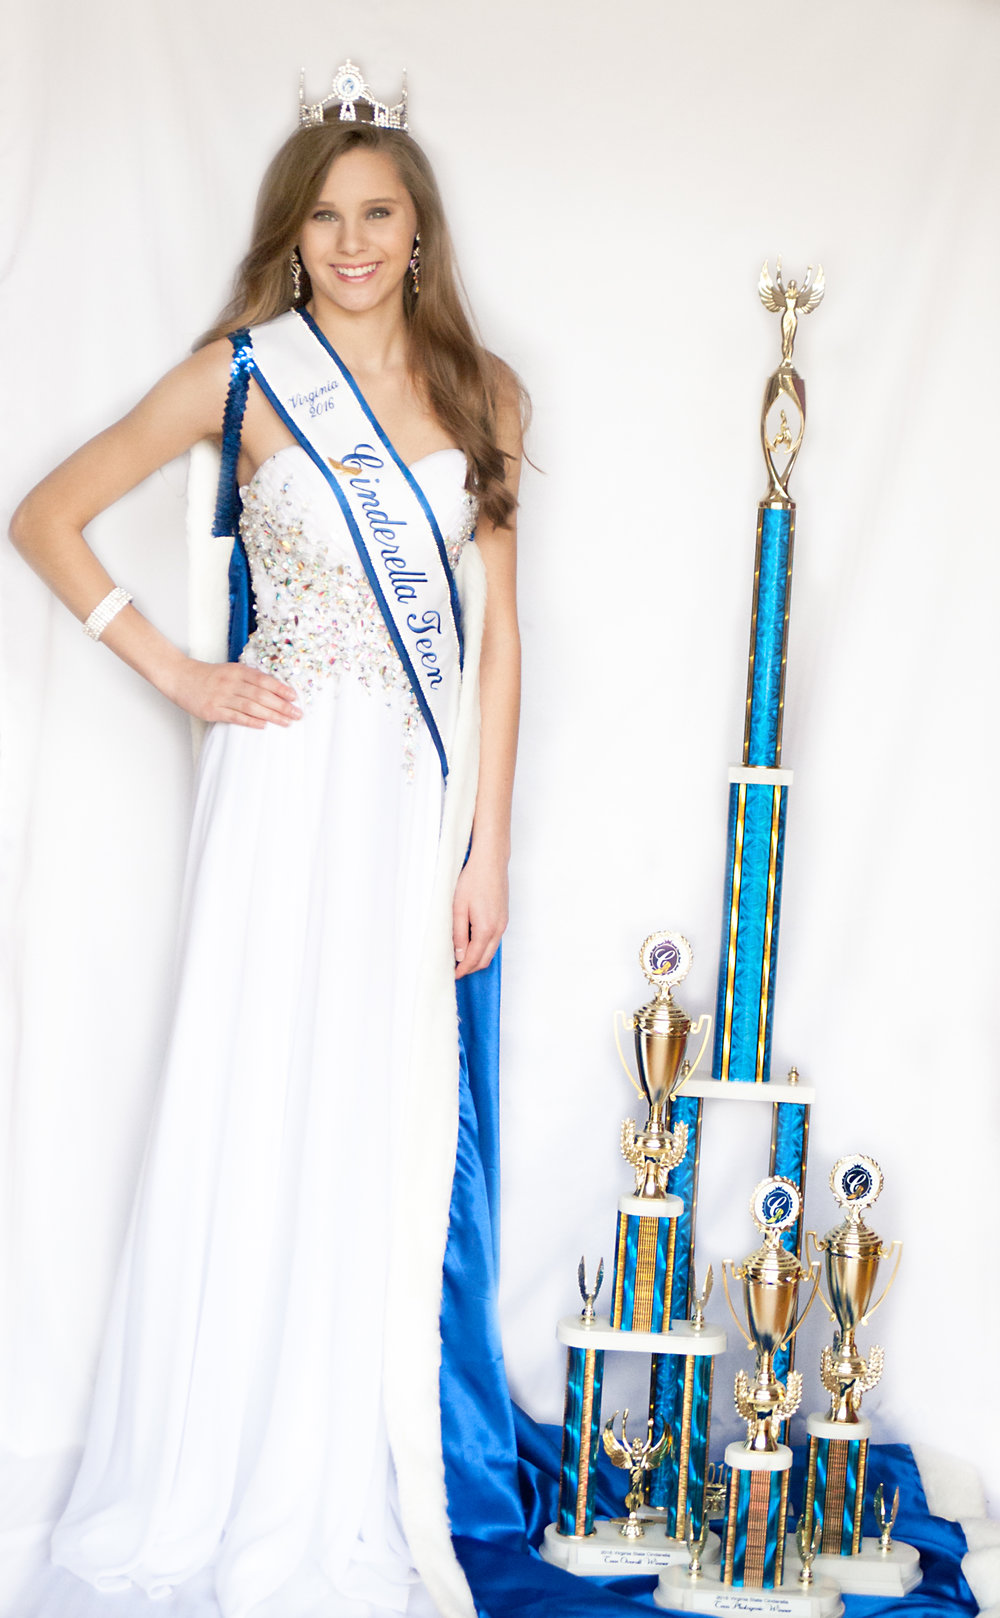 I have competed in the Miss Virginia Cinderella Scholarship Program for 10 years. I have achieved other titles - Miss Virginia Talent, Photogenic, and Cover Girl. State of Virginia Representative in the International Cinderella Scholarship Program -